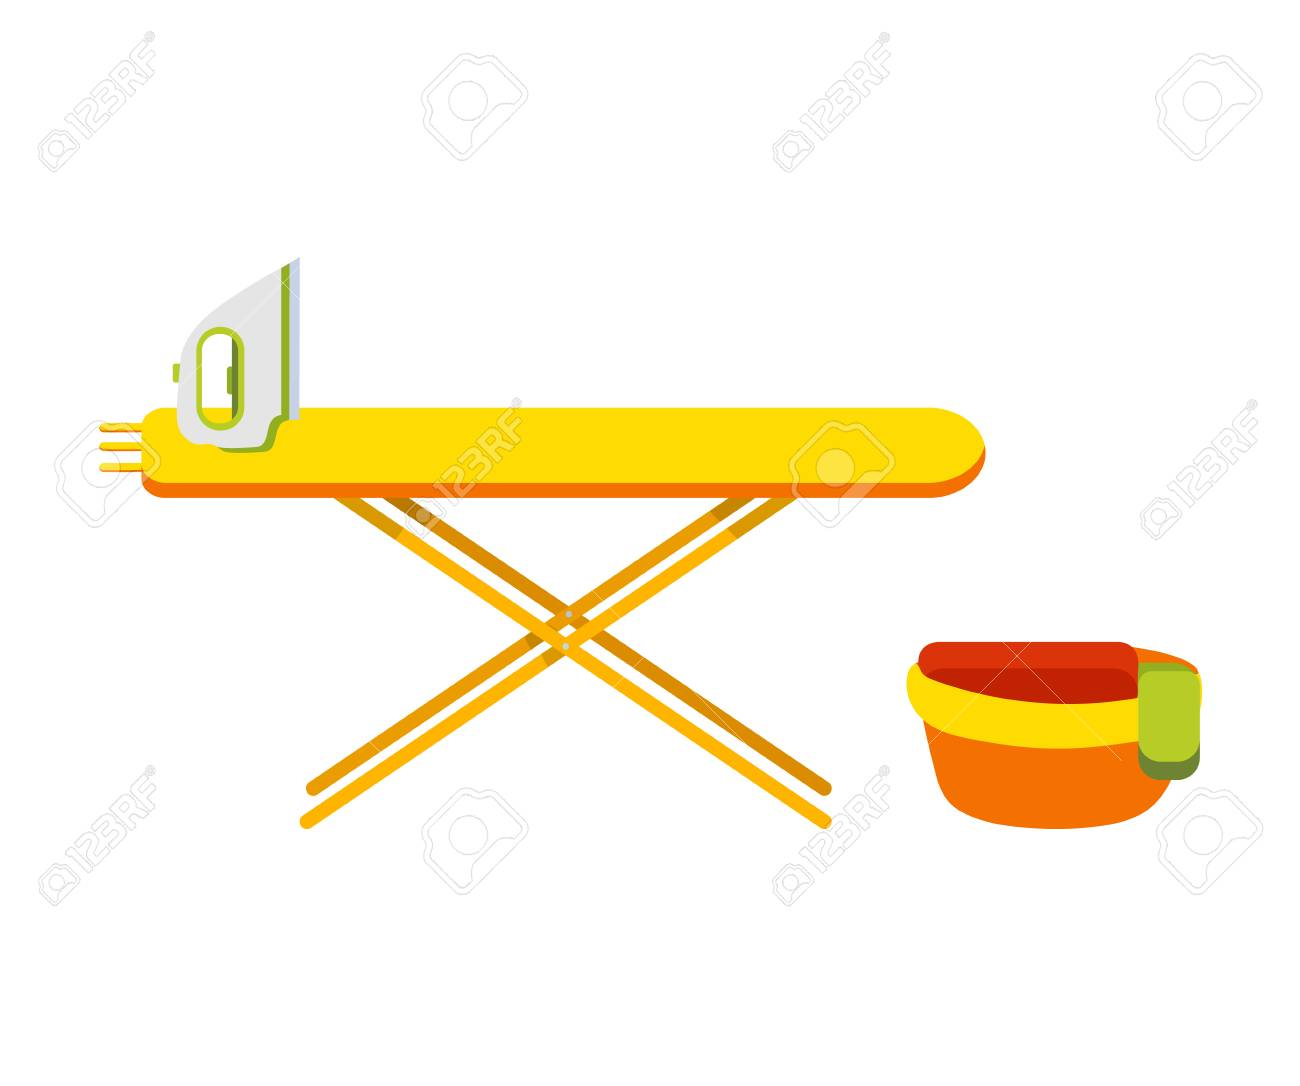 Ironing Board With Iron Basin With Things Next To The Board